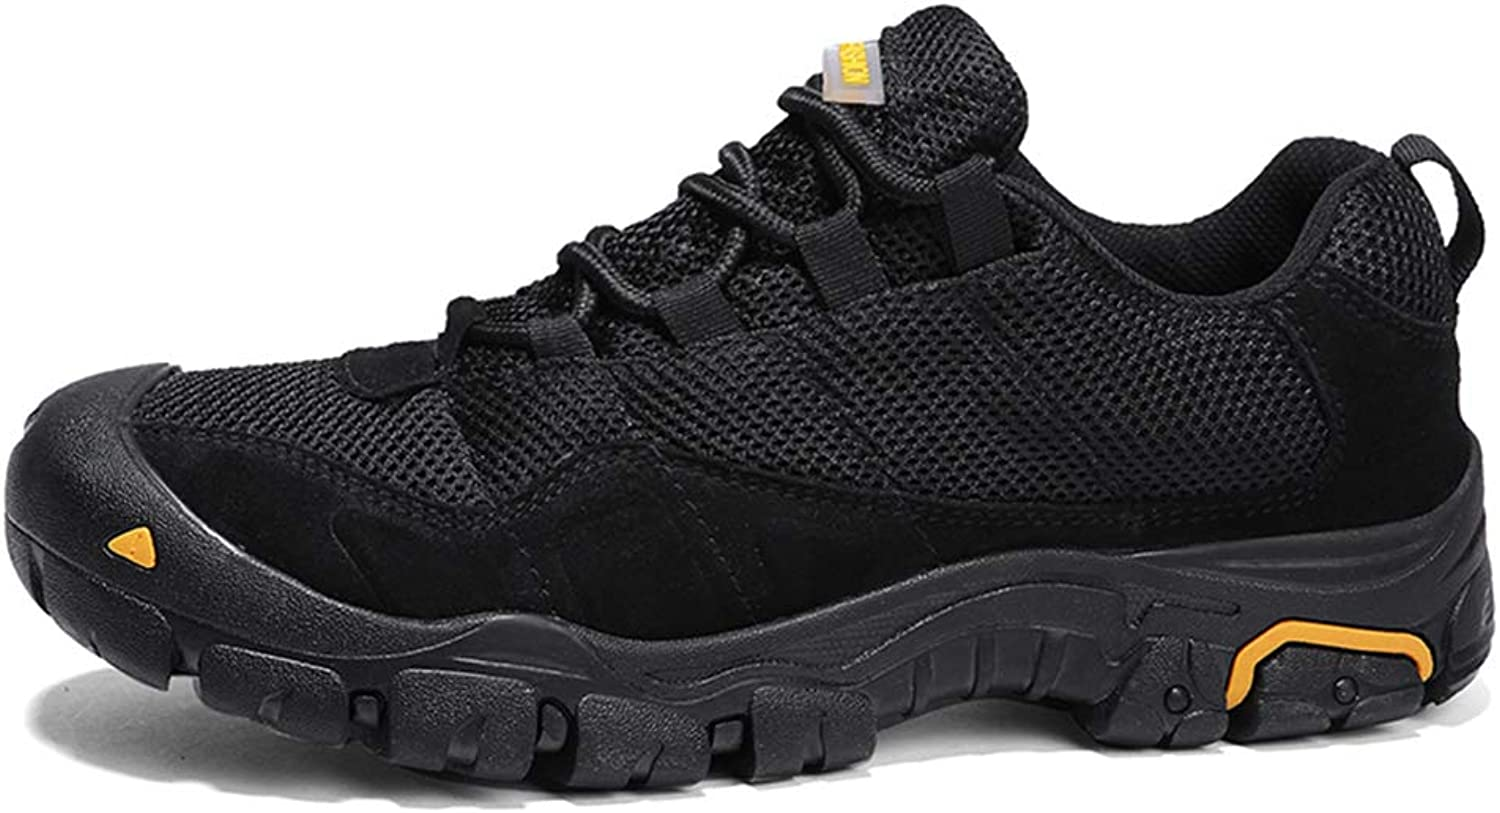 Men's Leather Hiking shoes Outdoor Mesh Sports shoes